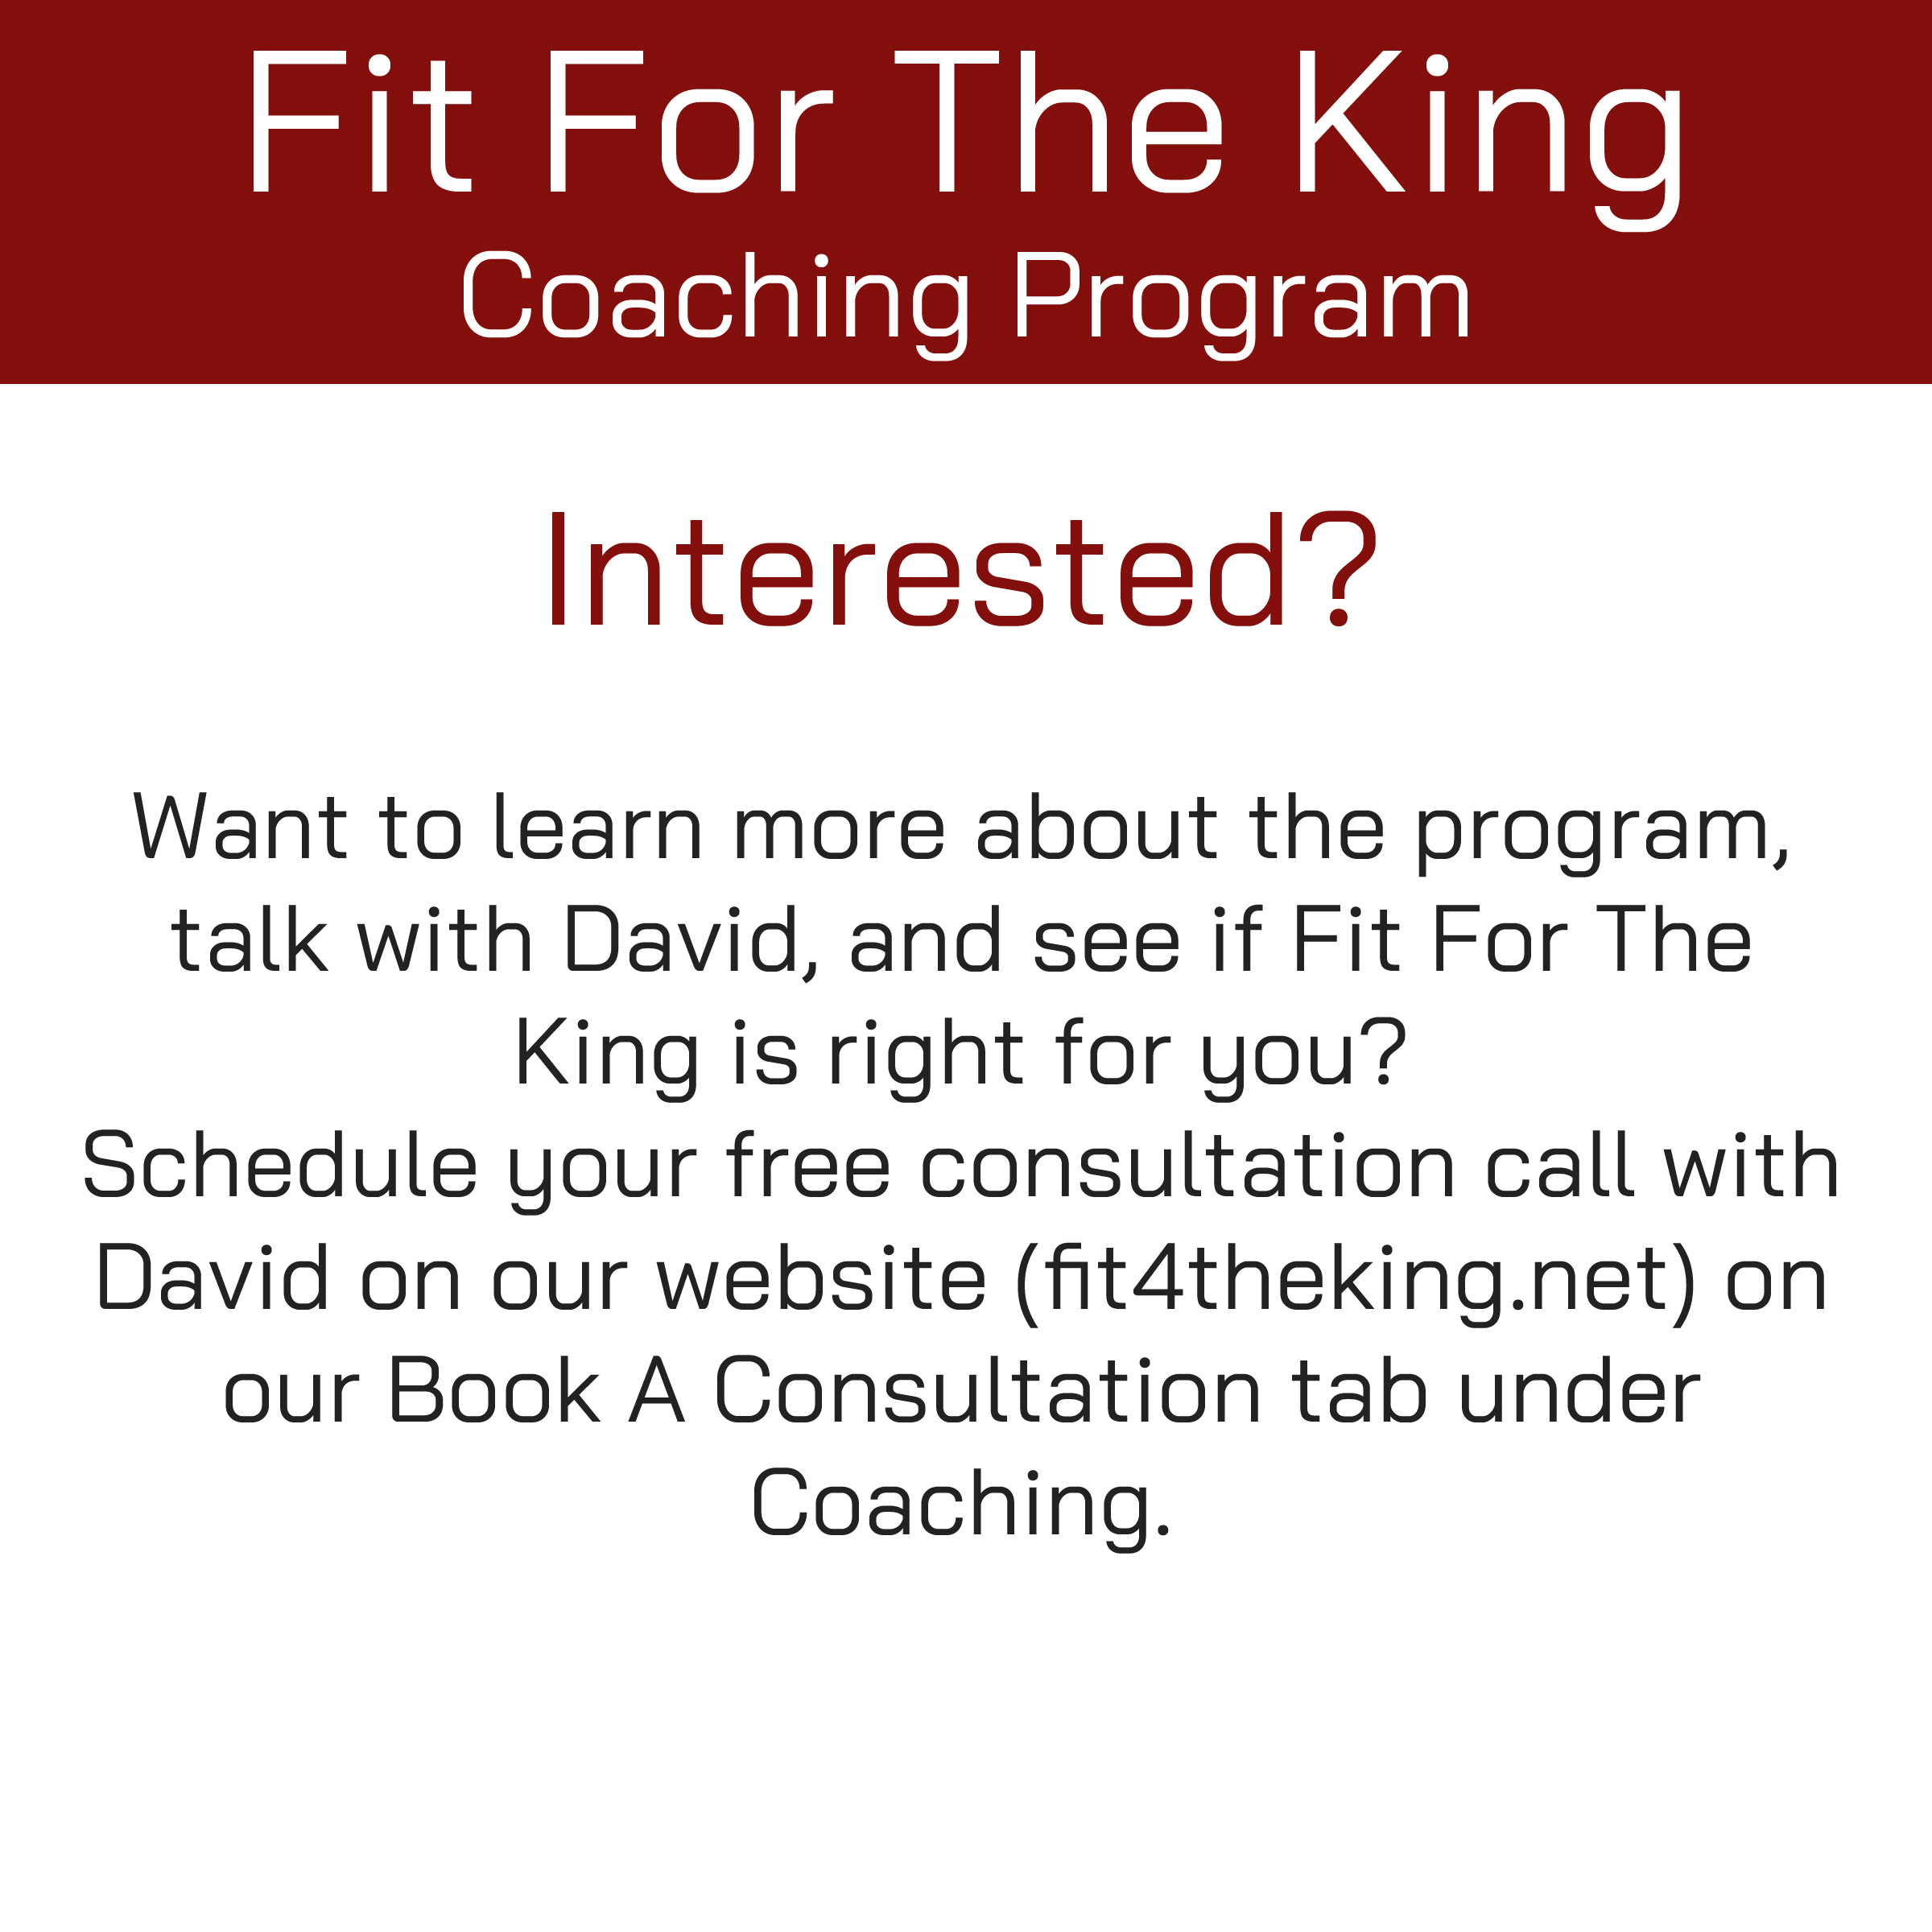 FFTK Coaching Program